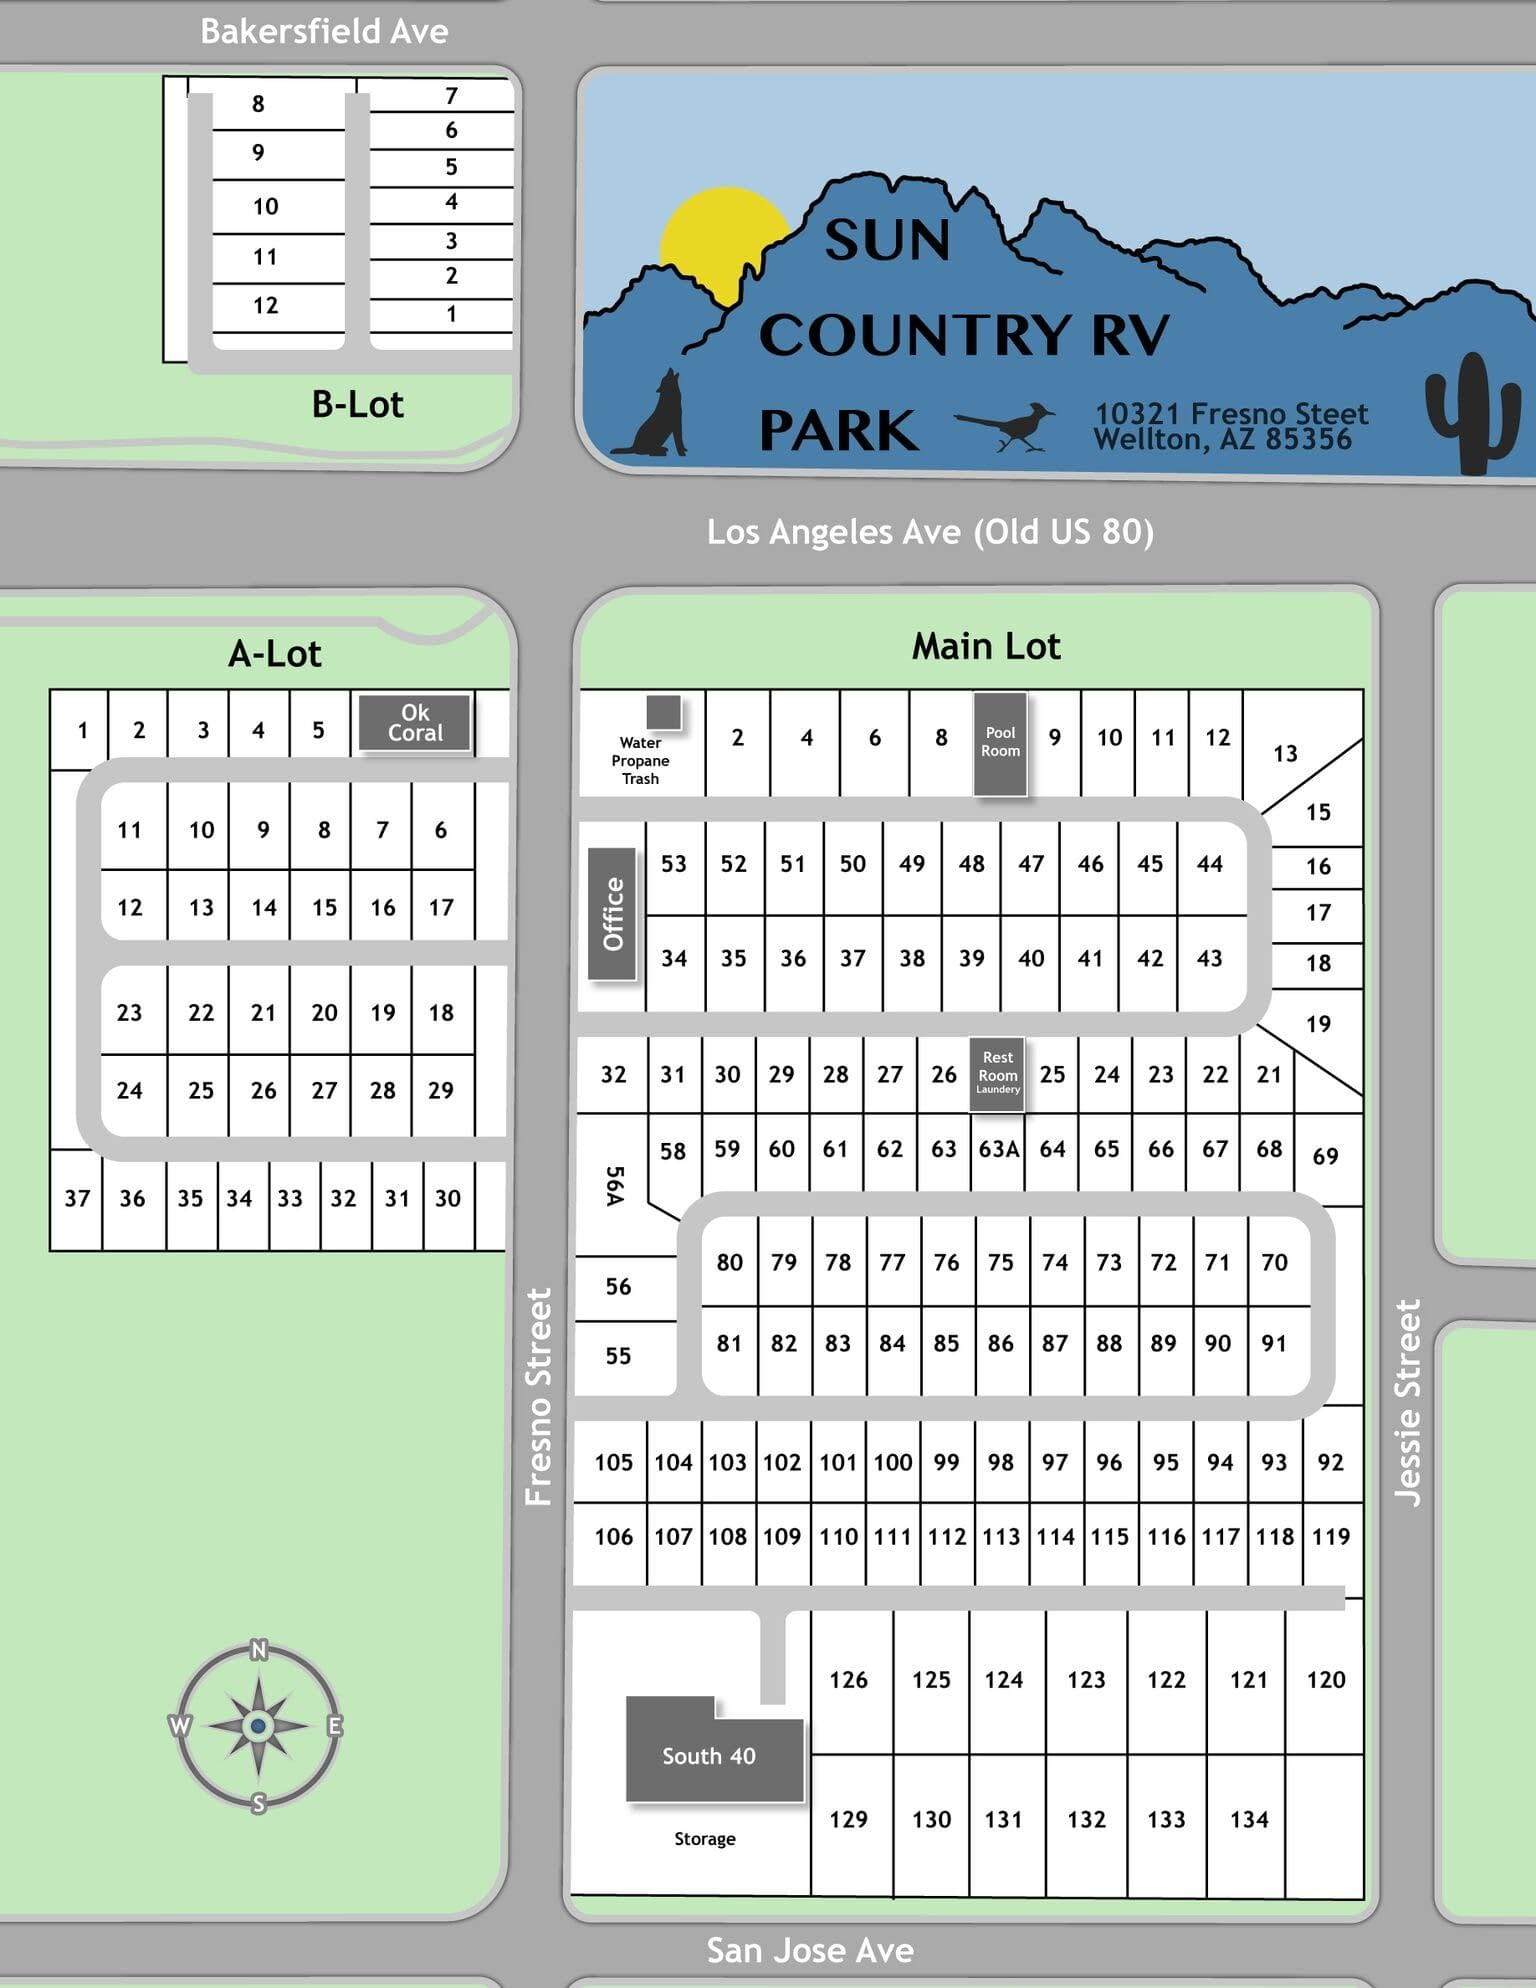 A map of Sun Country RV Park at 10321 Fresno Street, Wellton AZ 85365. The map shows that the Main Lot is bordered by Los Angeles Ave (Old US 80) on the north side, Fresno Street on the west side, Jessie Street on the east side, and San Jose Ave on the south side. The Main Lot includes the area for water, proprane, and trash on the northeast corner of the lot next to the office. The pool room is located on the north of the Main Lot and the restroom and laundry facilites are on the next row south of that. The storage facil;ity is located on the south west corner of the Main Lot. To the west if the Main Lot is the A-Lot section bordered on its east by Fresno Street. The A-lot has an area labeled as the Ok Coral in the north east corner of the lot. To the north of A-Lot is the B-Lot and it is bordered by Los Angeles Ave (Old US 80) on the south side, Fresno Street on the east side, and Bakersfield Ave on the north side. Clicking the map takes you to a larger image that is also a downloadable PDF.